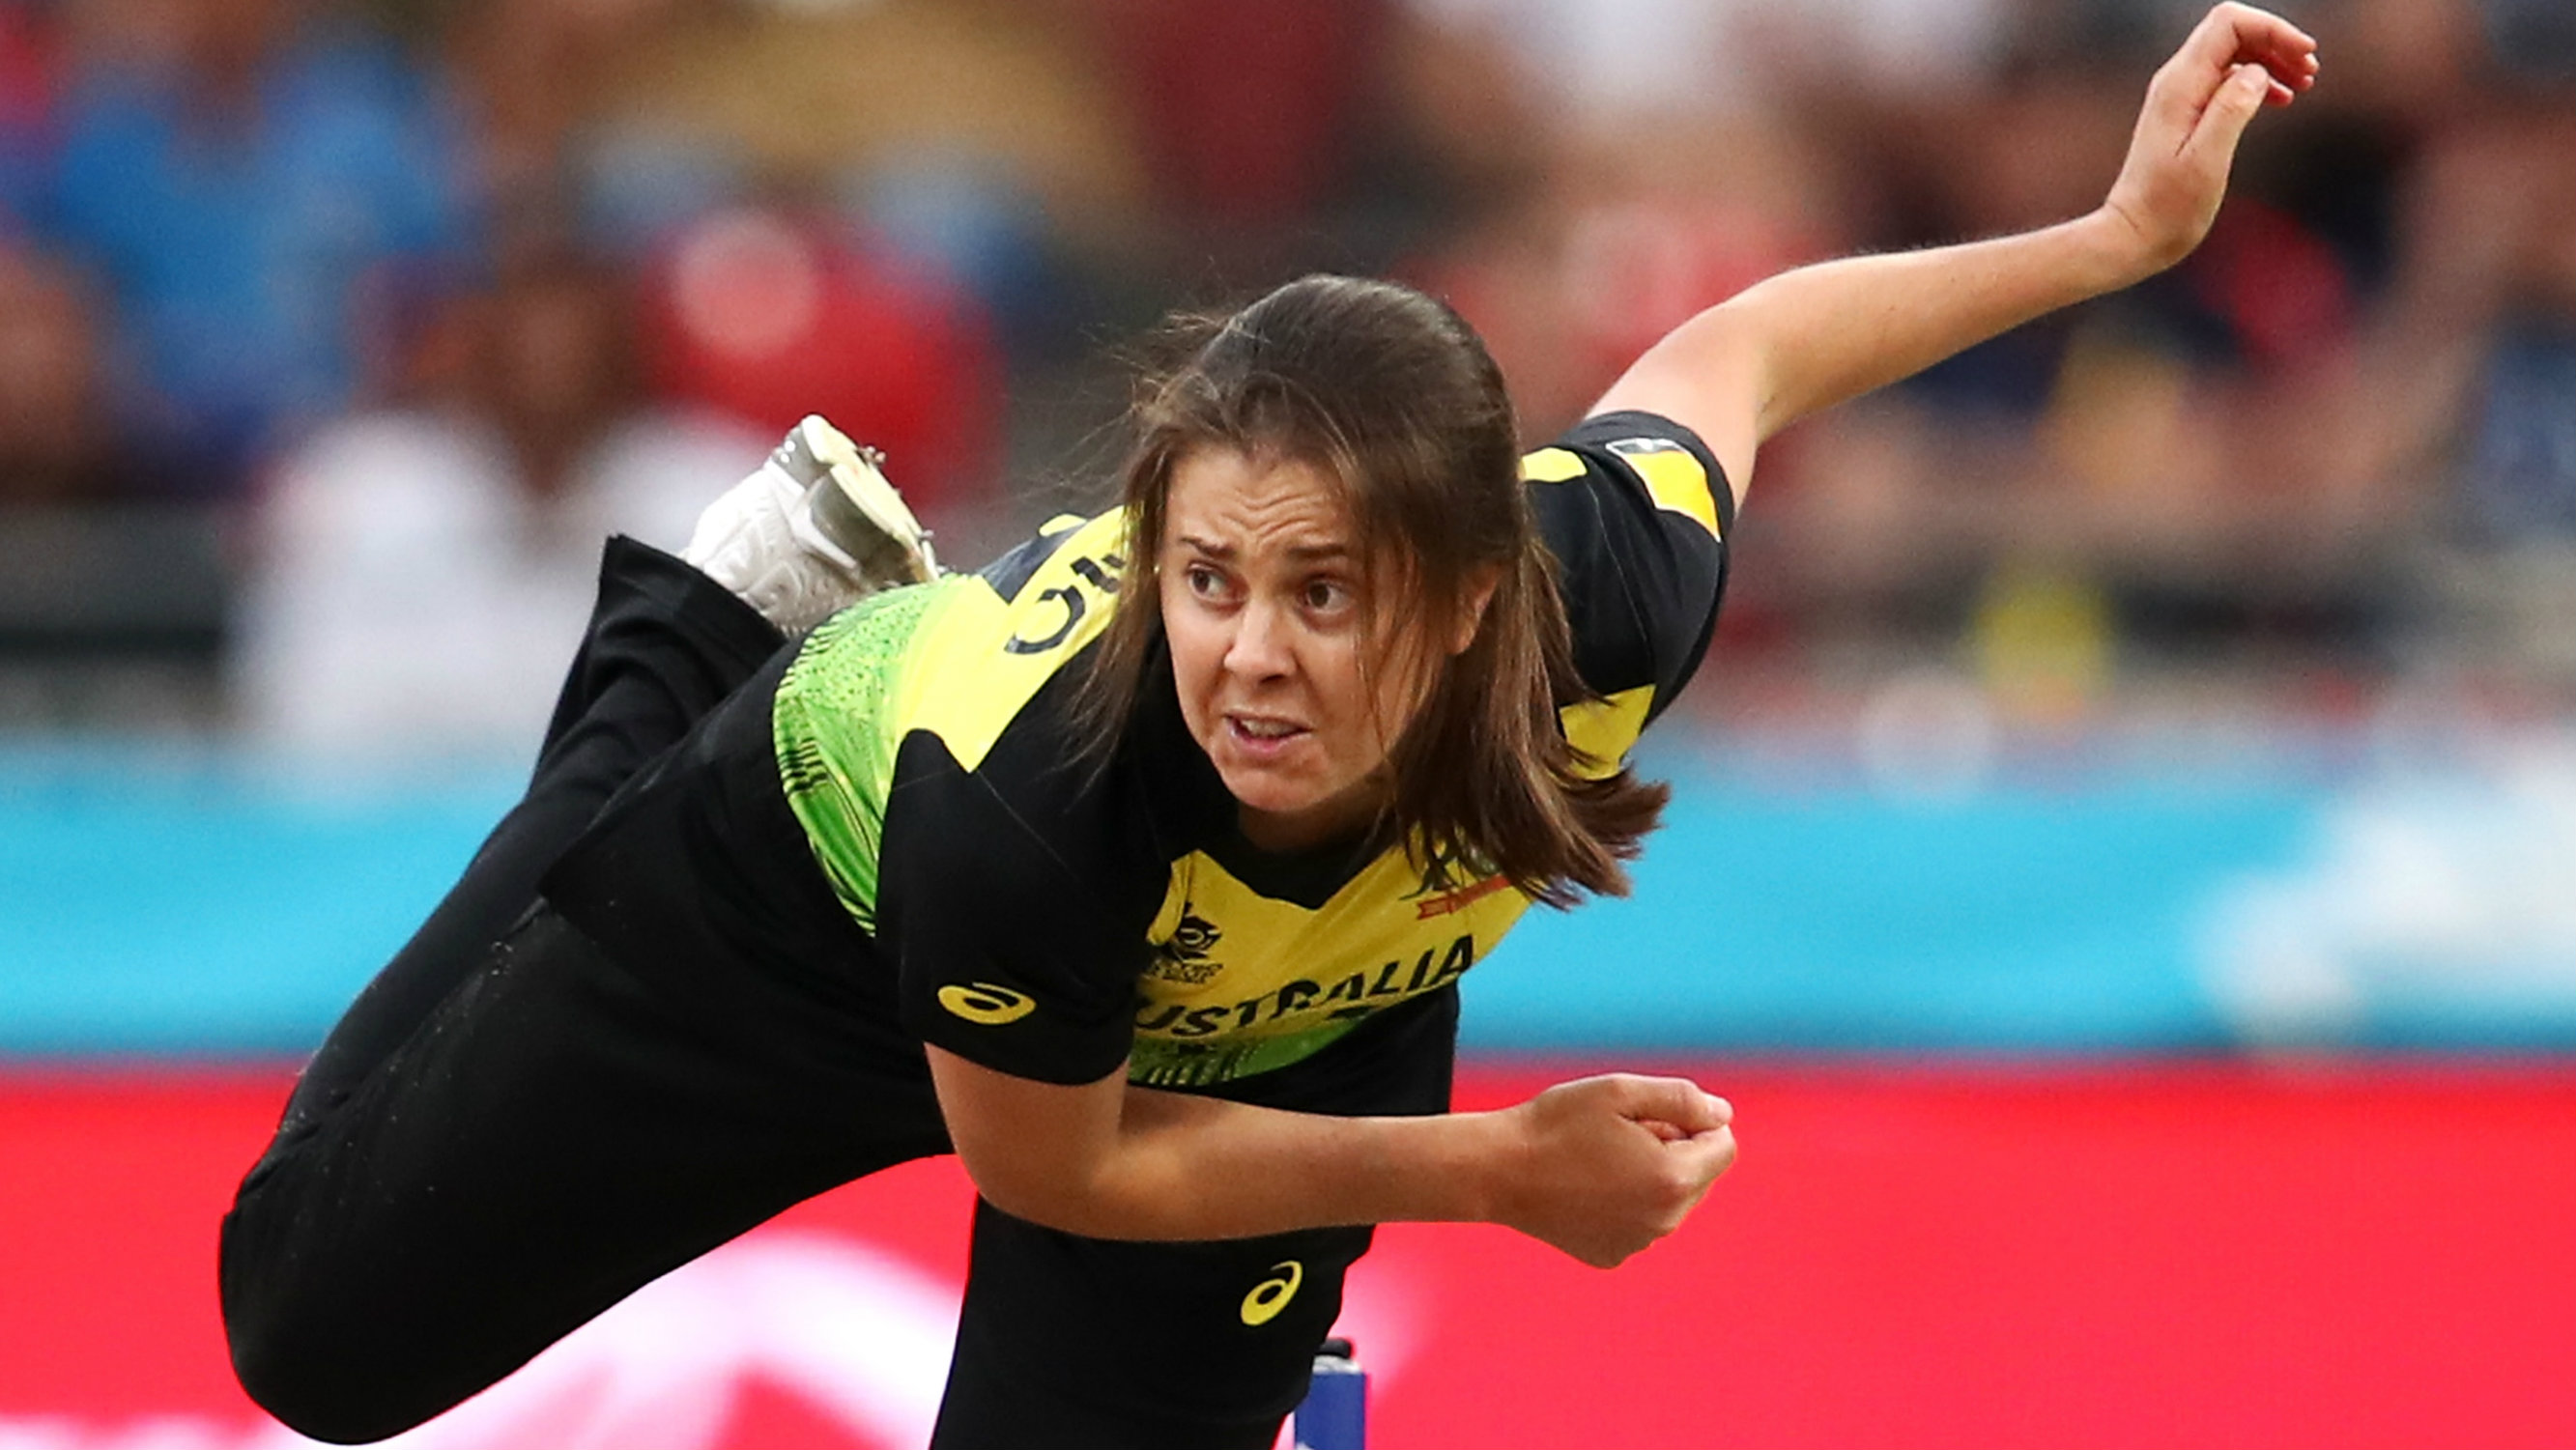 Women's T20 World Cup: Molly Strano misses out on fairytale return after whirldwind few days